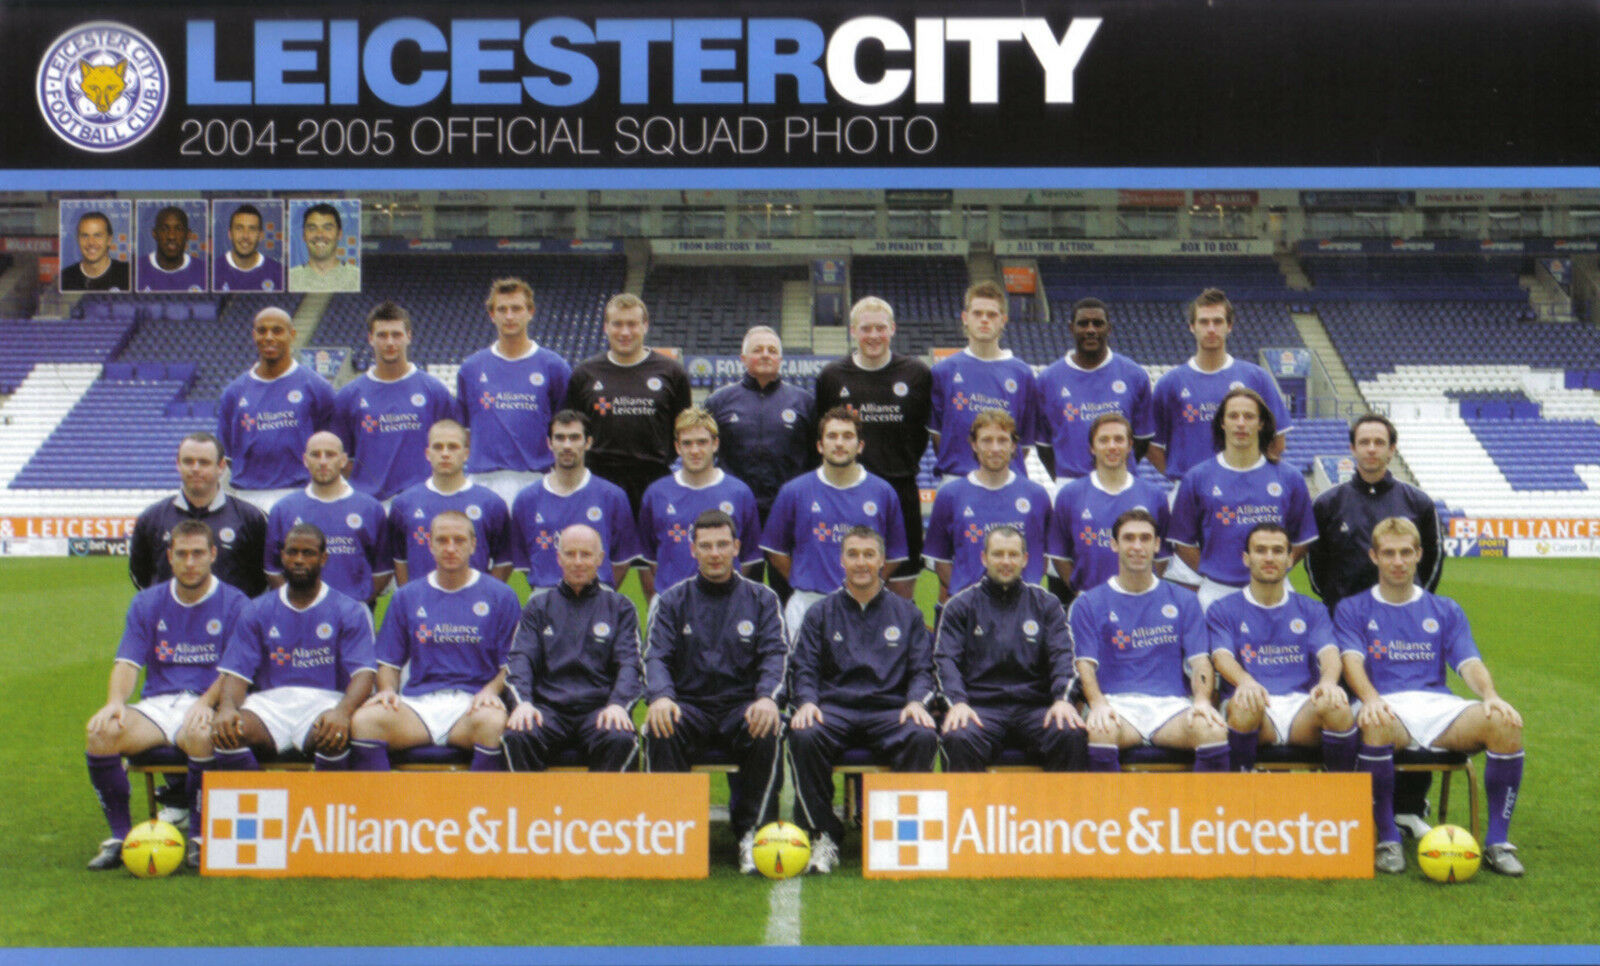 leicester city - photo #33